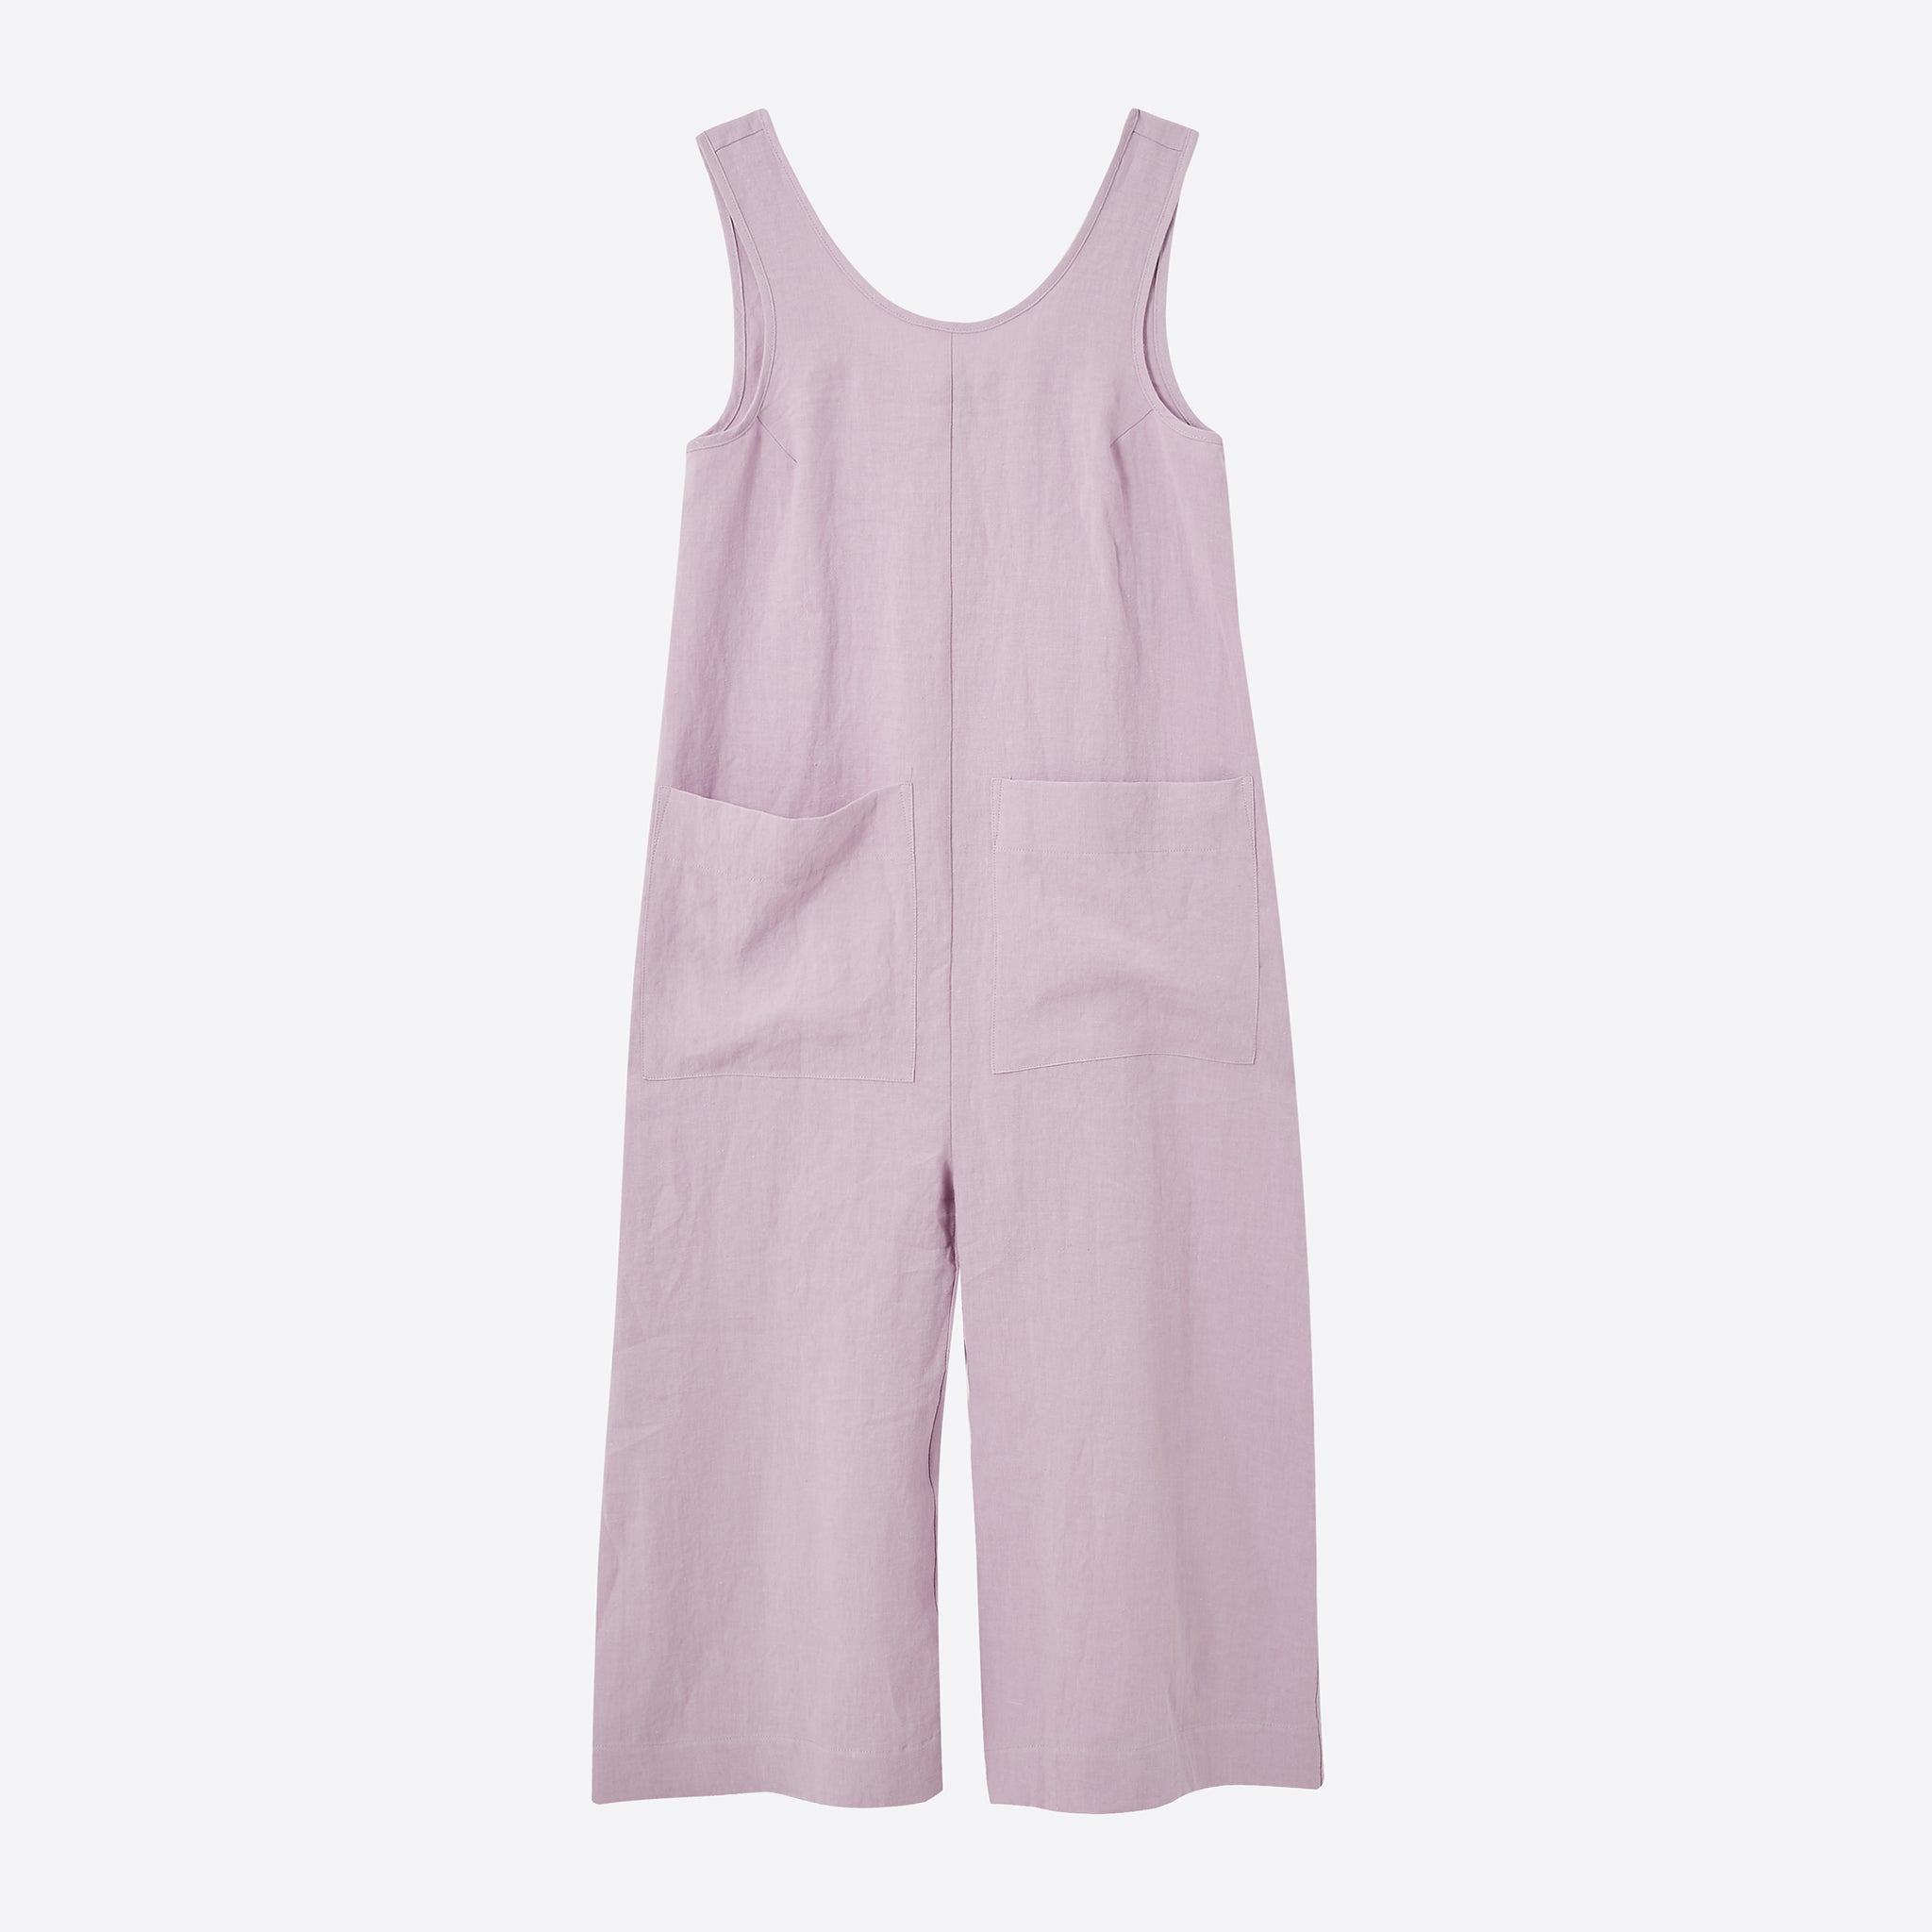 Ilana Kohn Milo Jumpsuit In Lilac Our Daily Edit